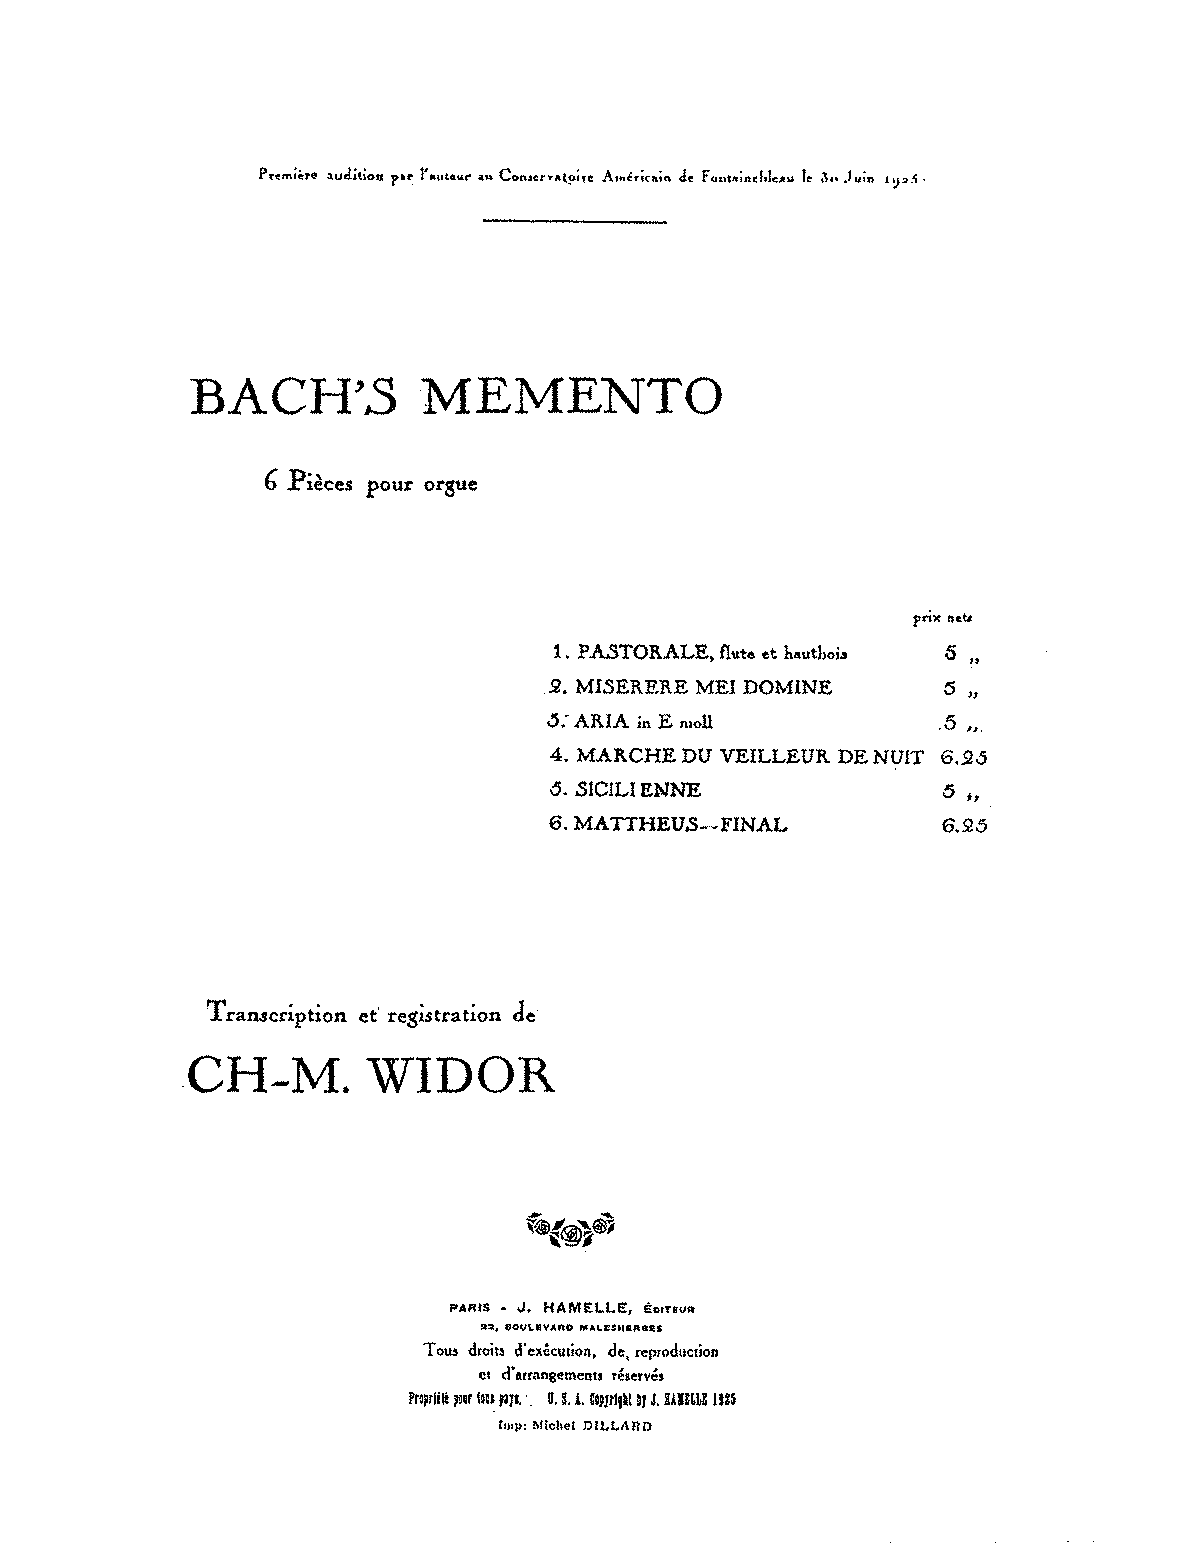 Widor Bach's Memento 6 Transcriptions for organ.pdf